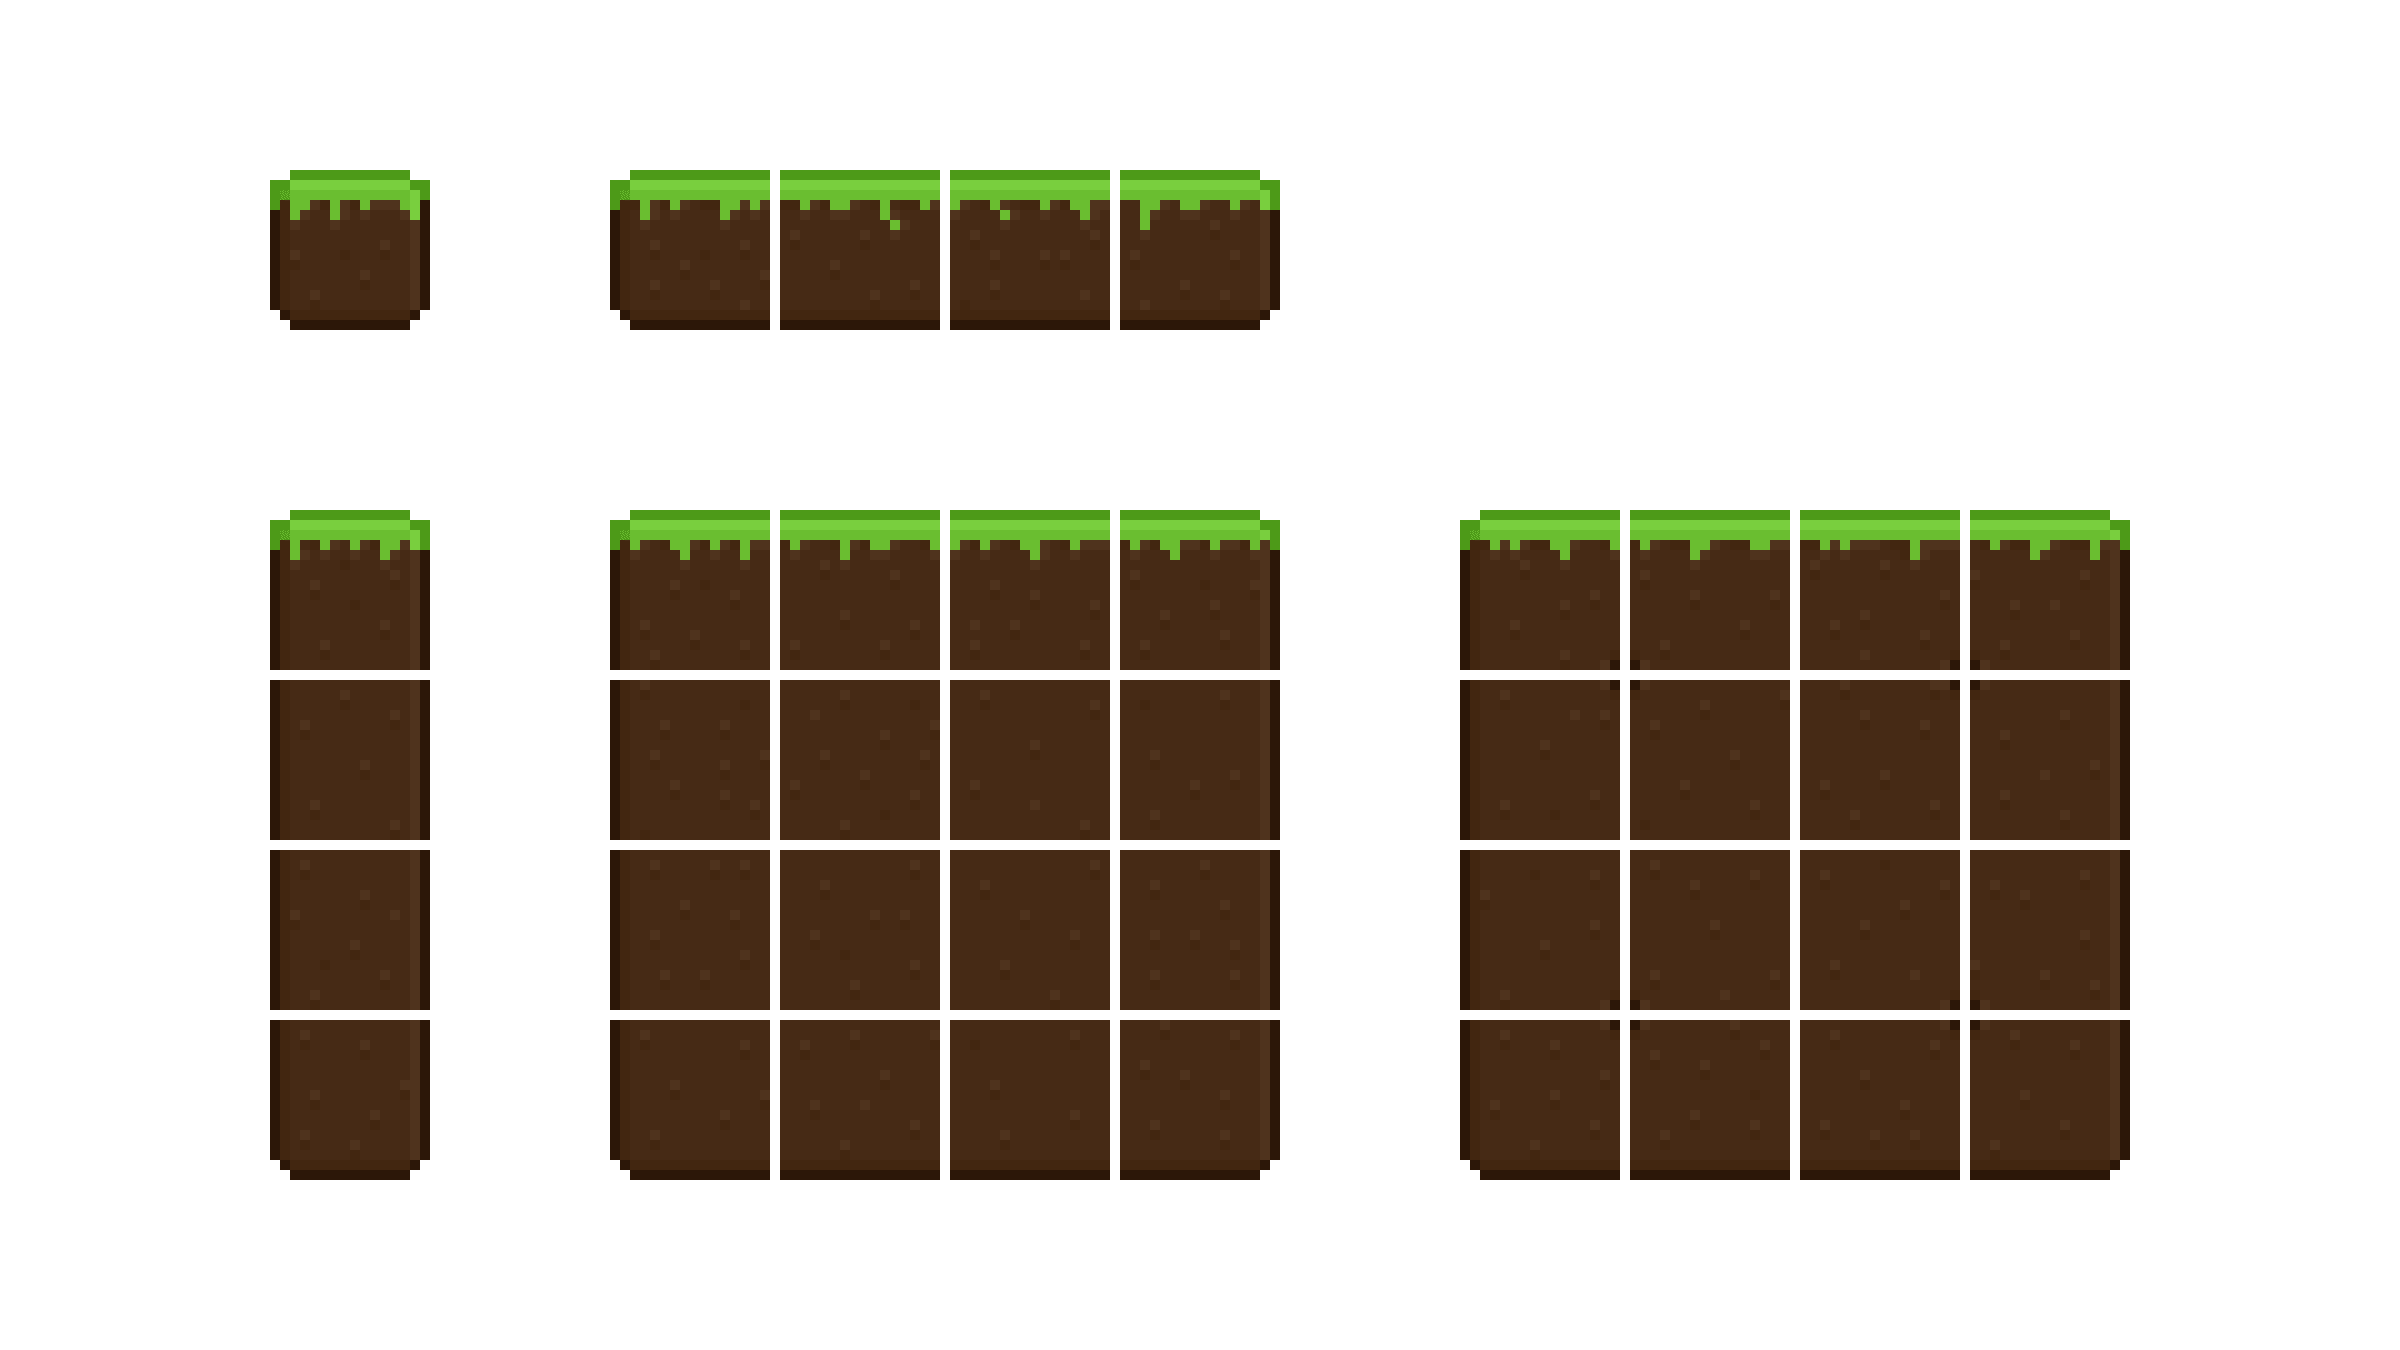 An example tileset created with the template.